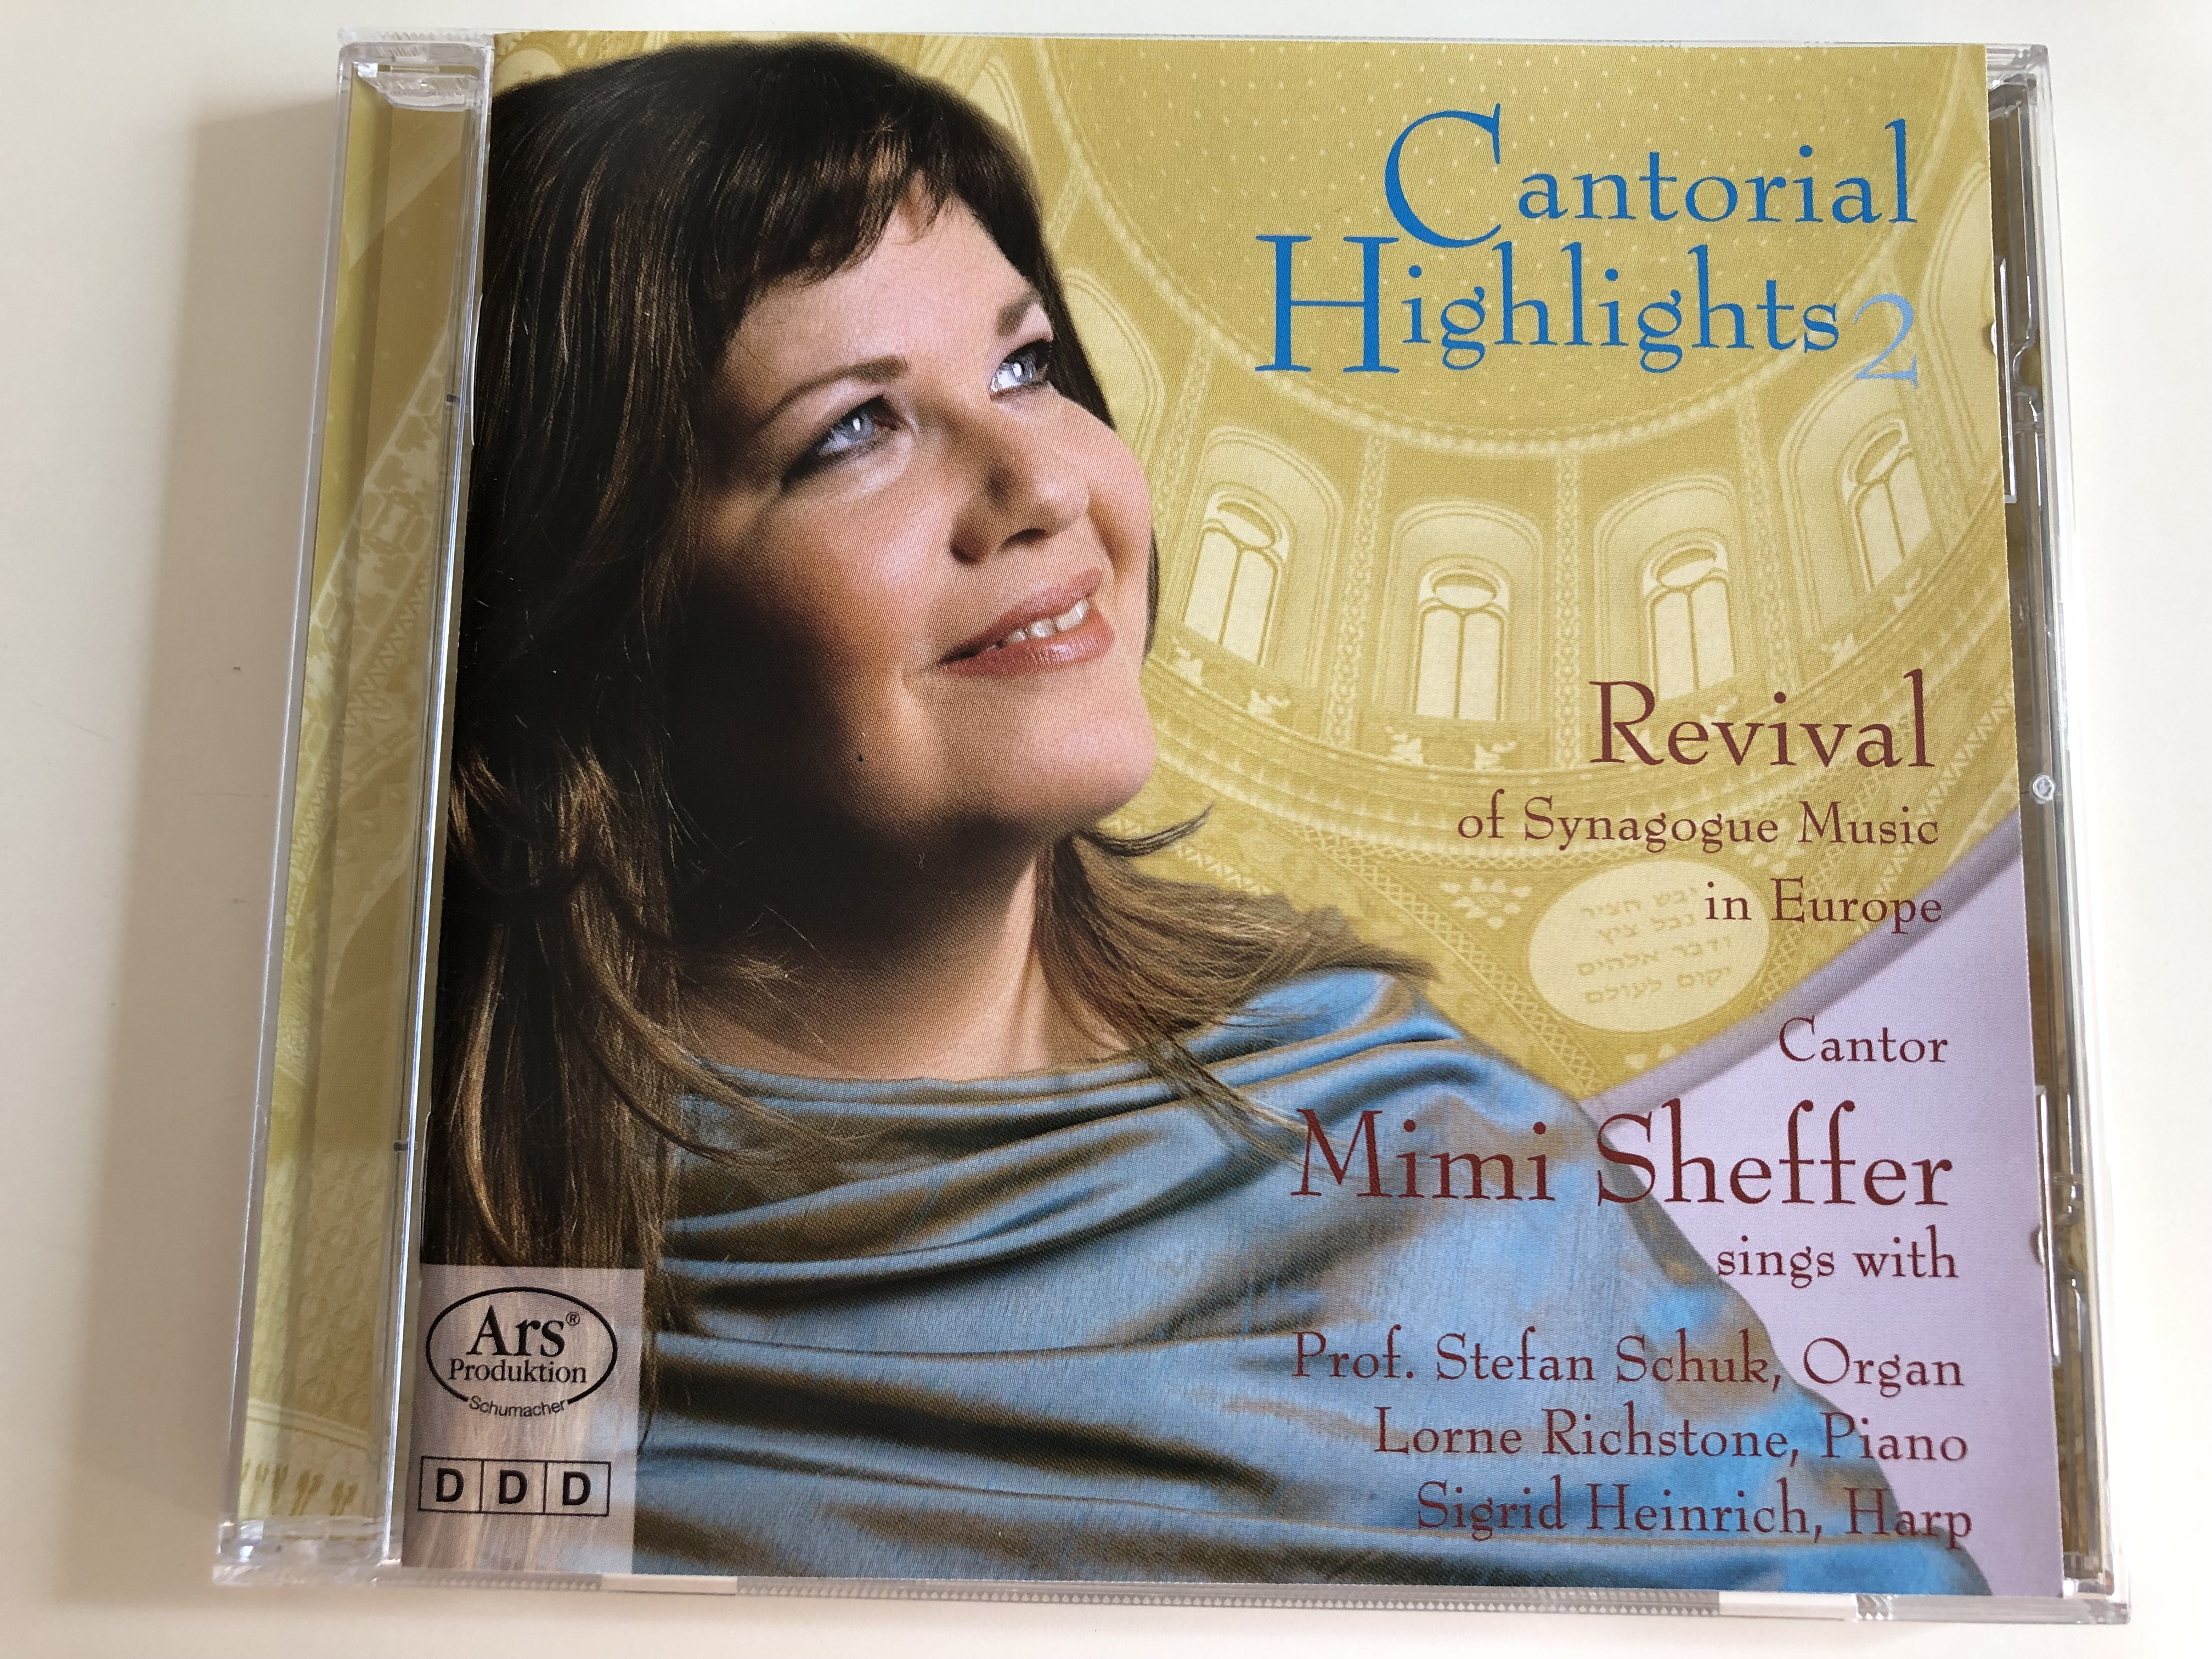 cantorial-highlights-2-revival-of-synagogue-music-in-europe-cantor-mimi-sheffer-sings-with-prof.-stefan-schuk-organ-lorne-richstone-piano-sigrid-heinrich-harp-audio-cd-2006-1-.jpg